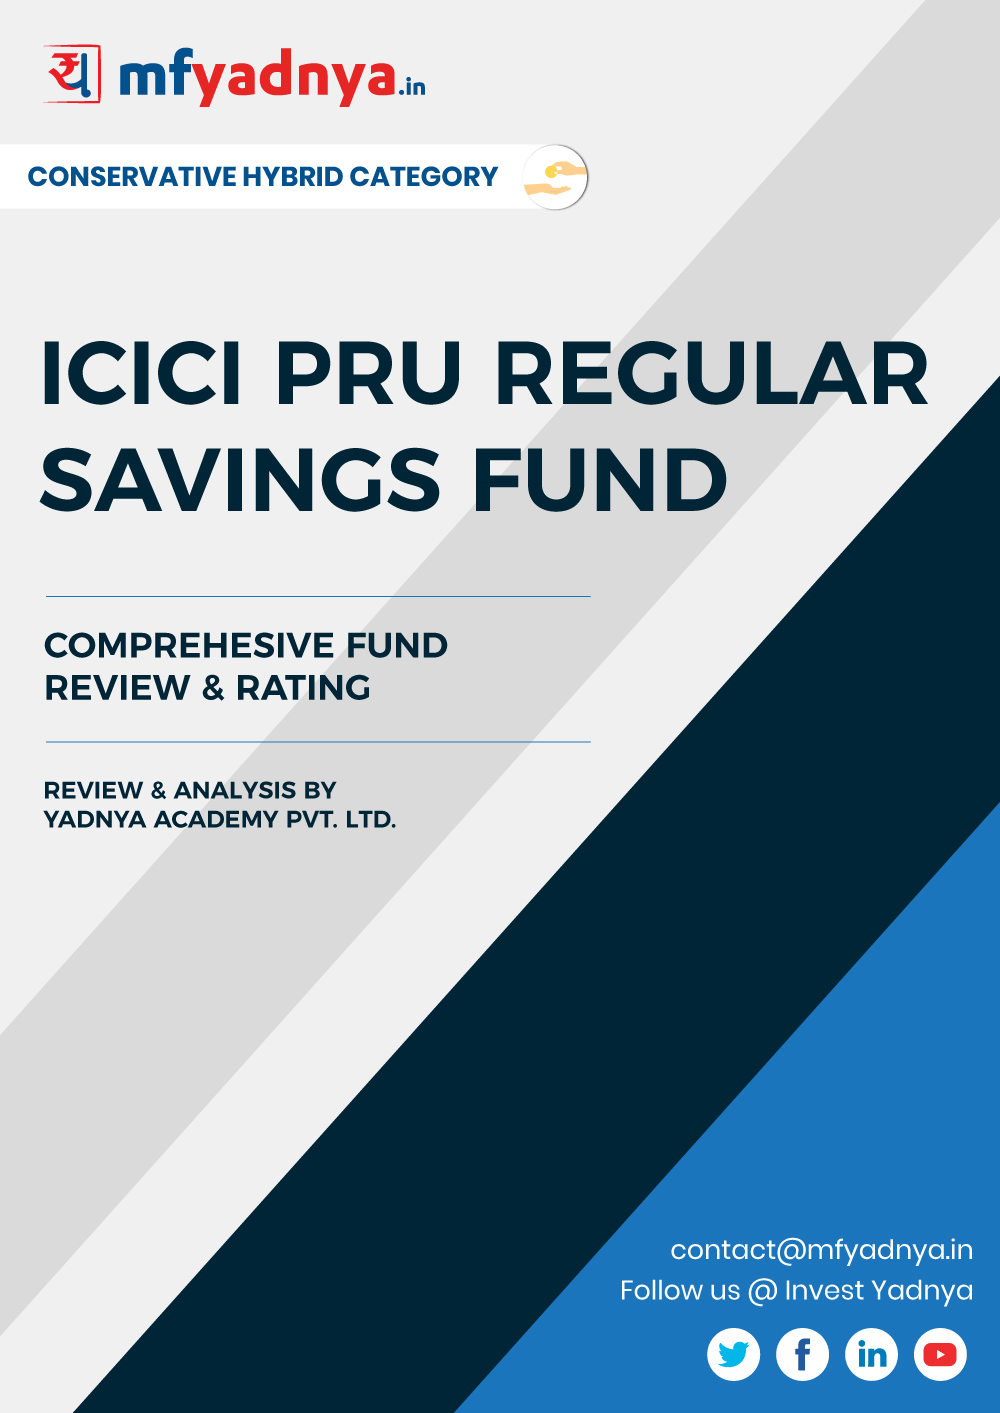 This e-book offers a comprehensive mutual fund review of ICICI Pru Regular Saving Fund . It reviews the fund's return, ratio, allocation etc. ✔ Detailed Mutual Fund Analysis ✔ Latest Research Reports